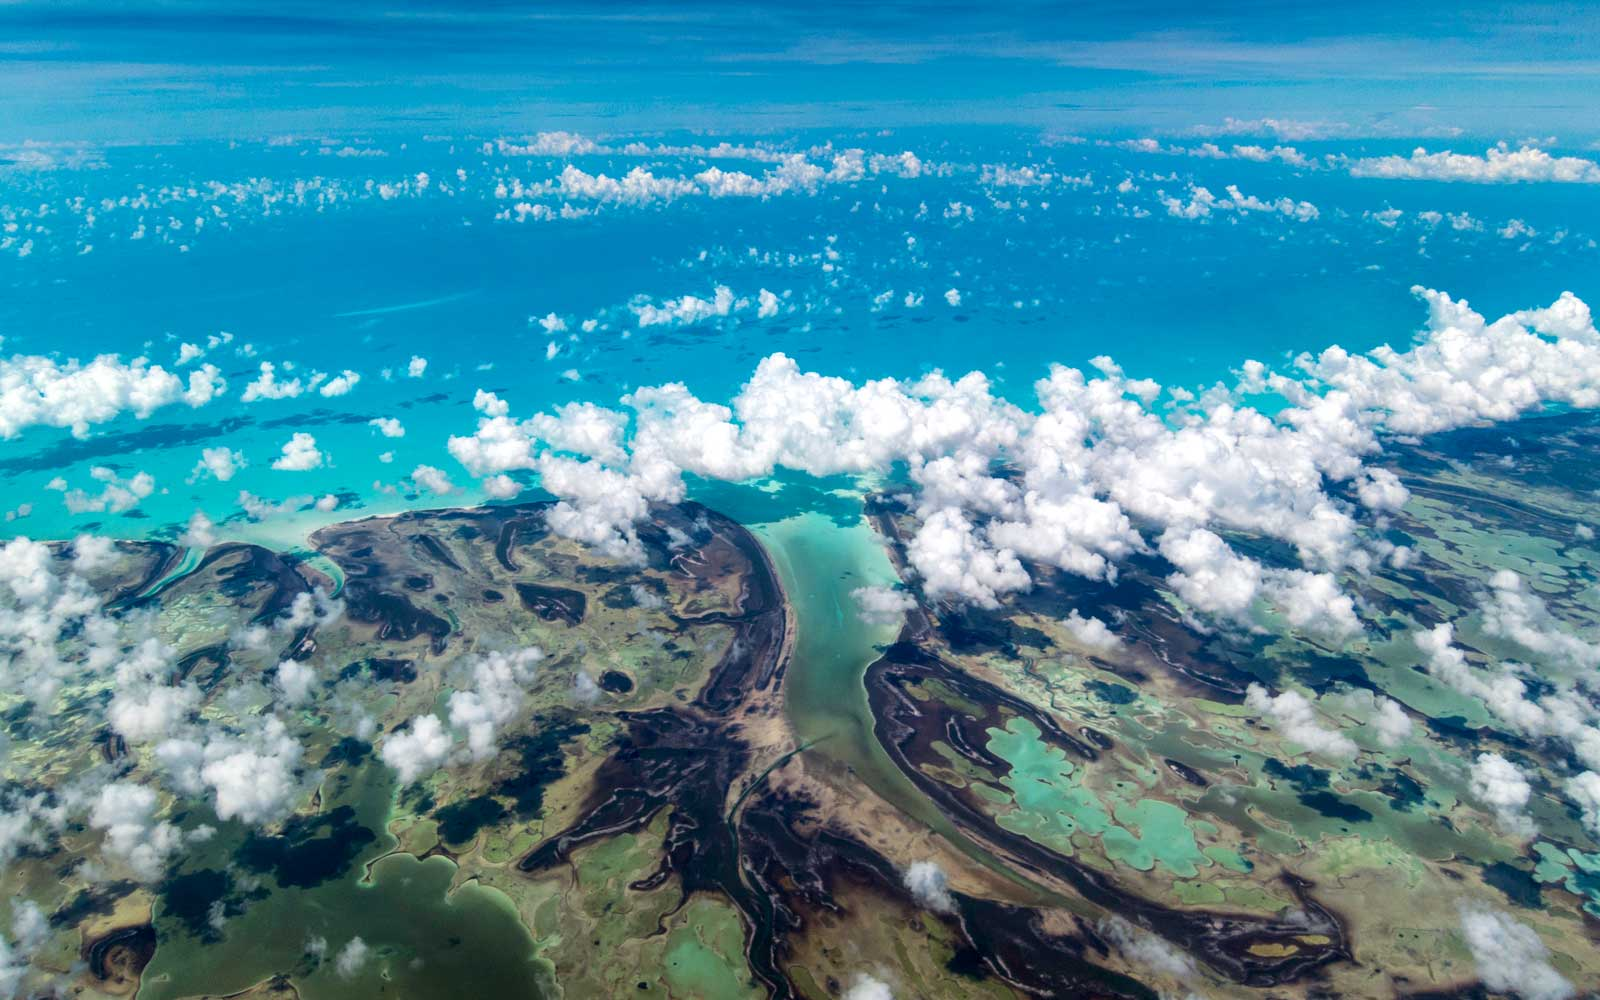 Andros Island in the Bahamas from a jet airplane window